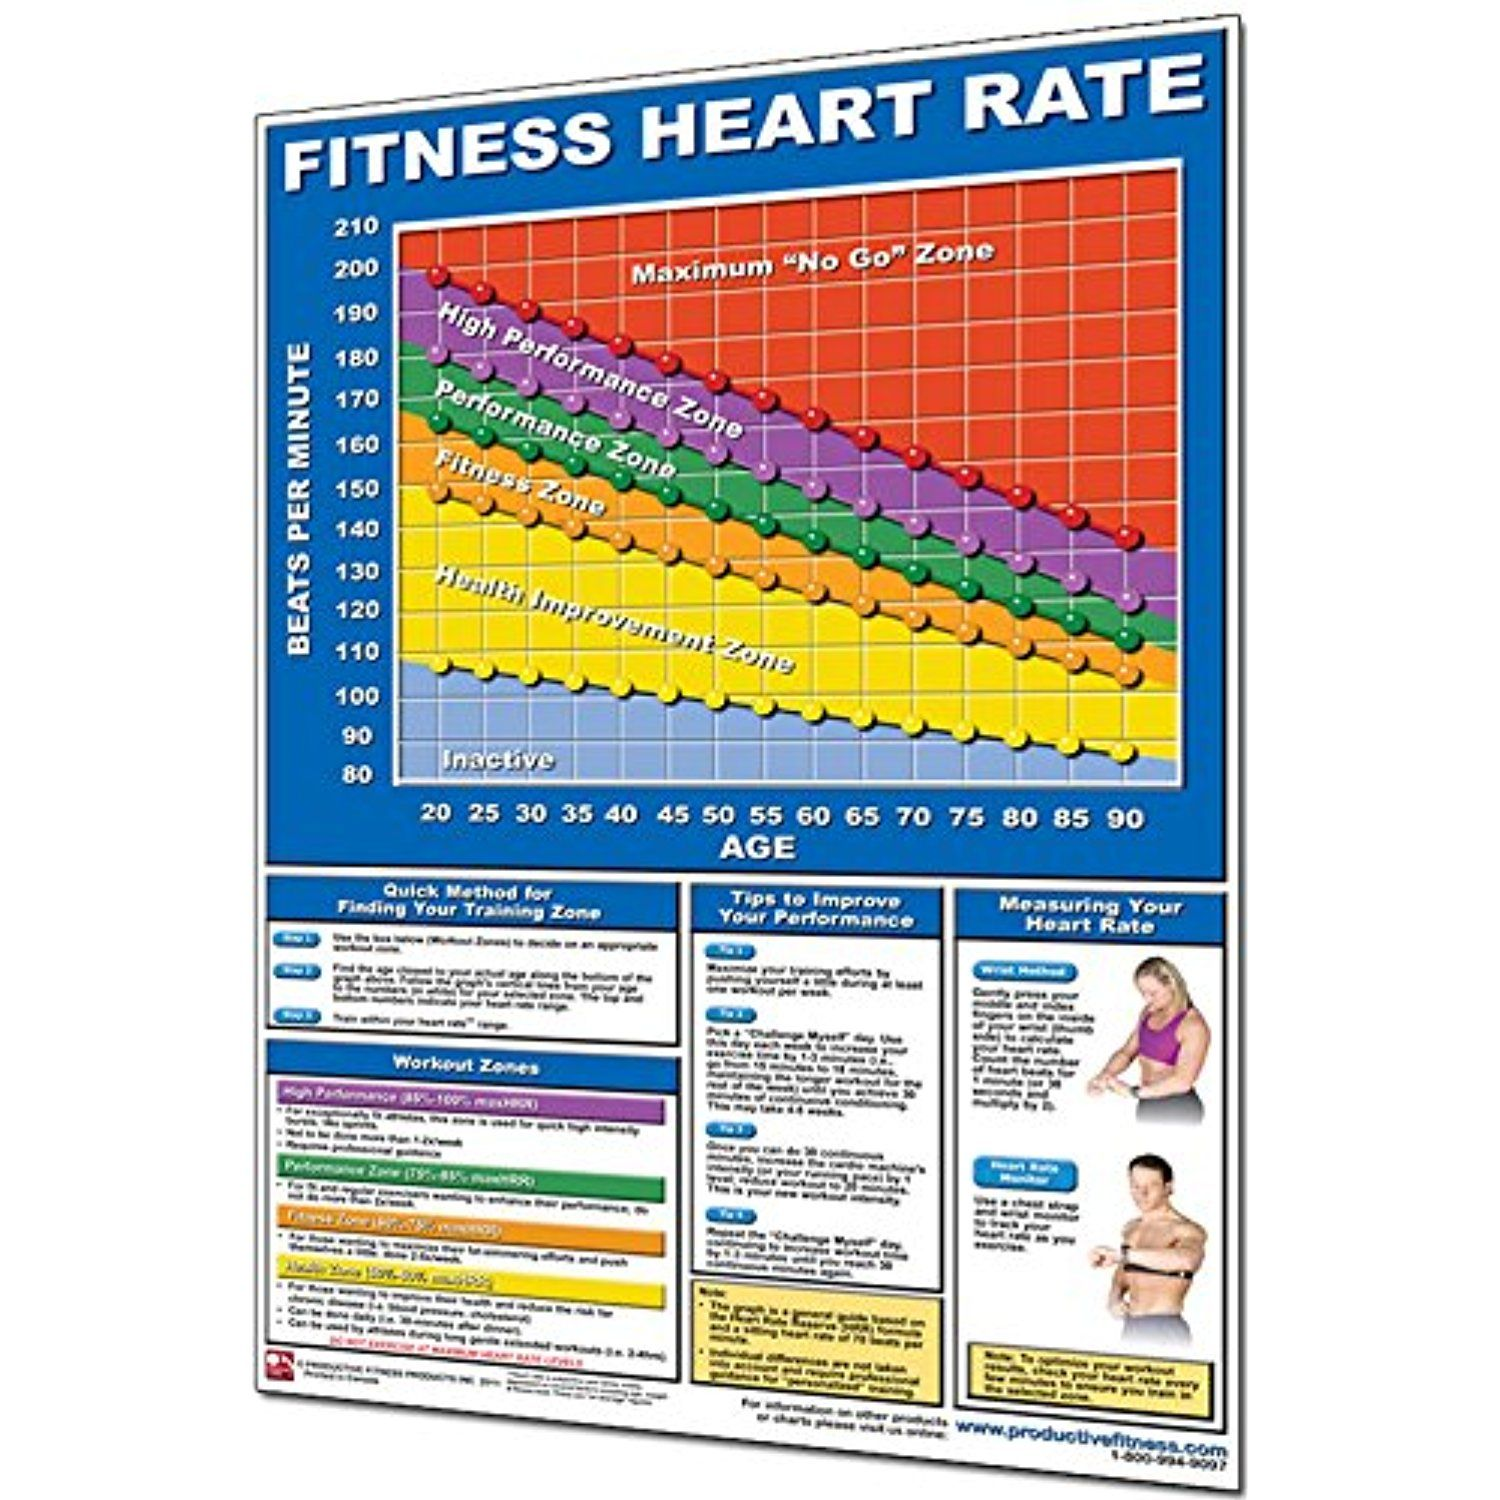 Productive Fitness Laminated Fitness Poster Fitness Heart Rate